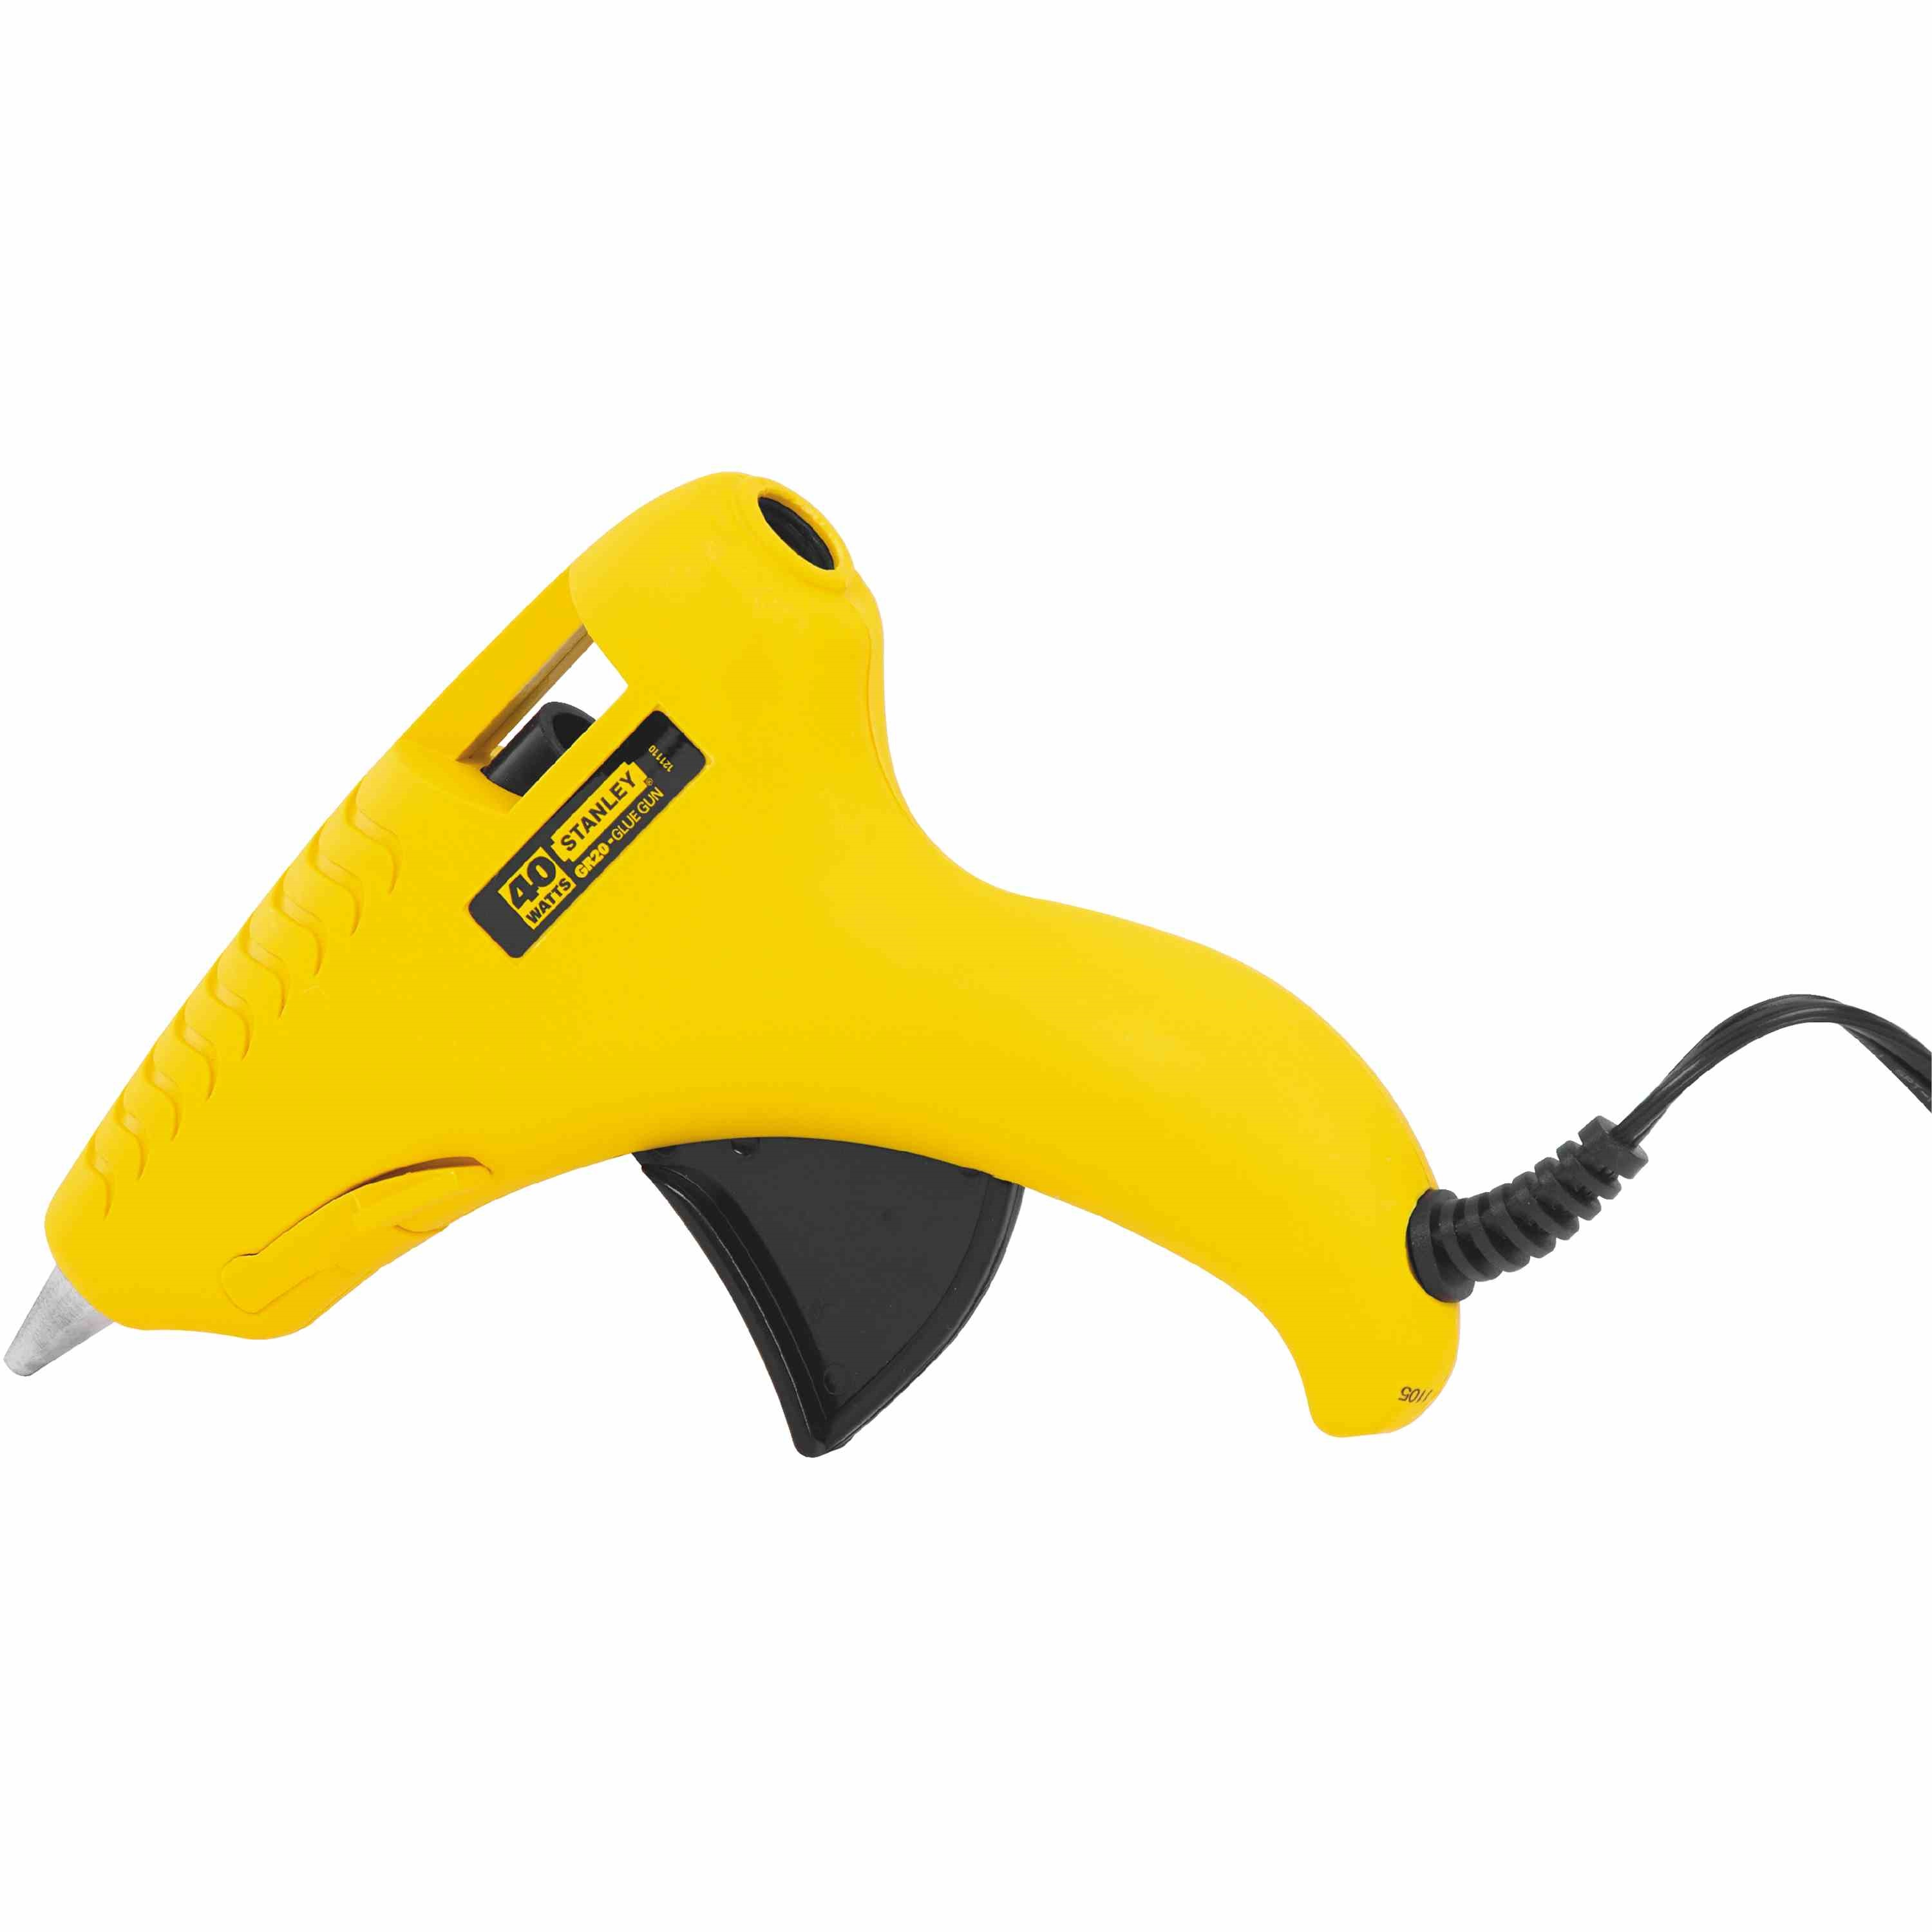 Stanley Tools - 812 in Heavy Duty Hot Melt Glue Gun - GR20